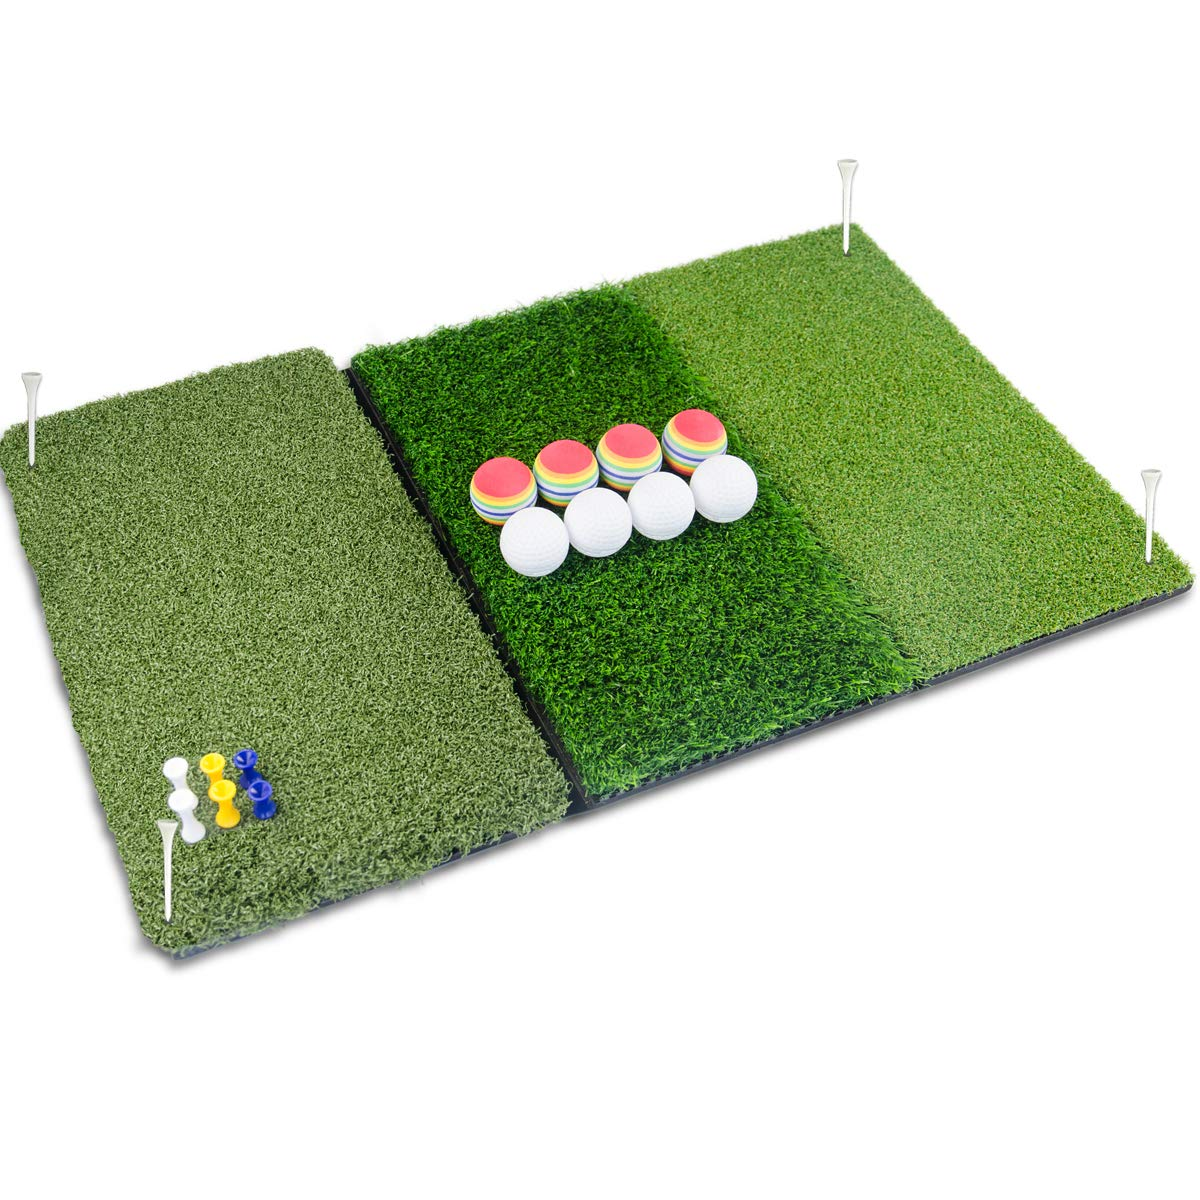 Perfshot Tri-Turf 3-in-1 Golf Hitting Mat with Realistic Tee Box Fairway Rough for Chipping Driving Practice Training Mat 16 25